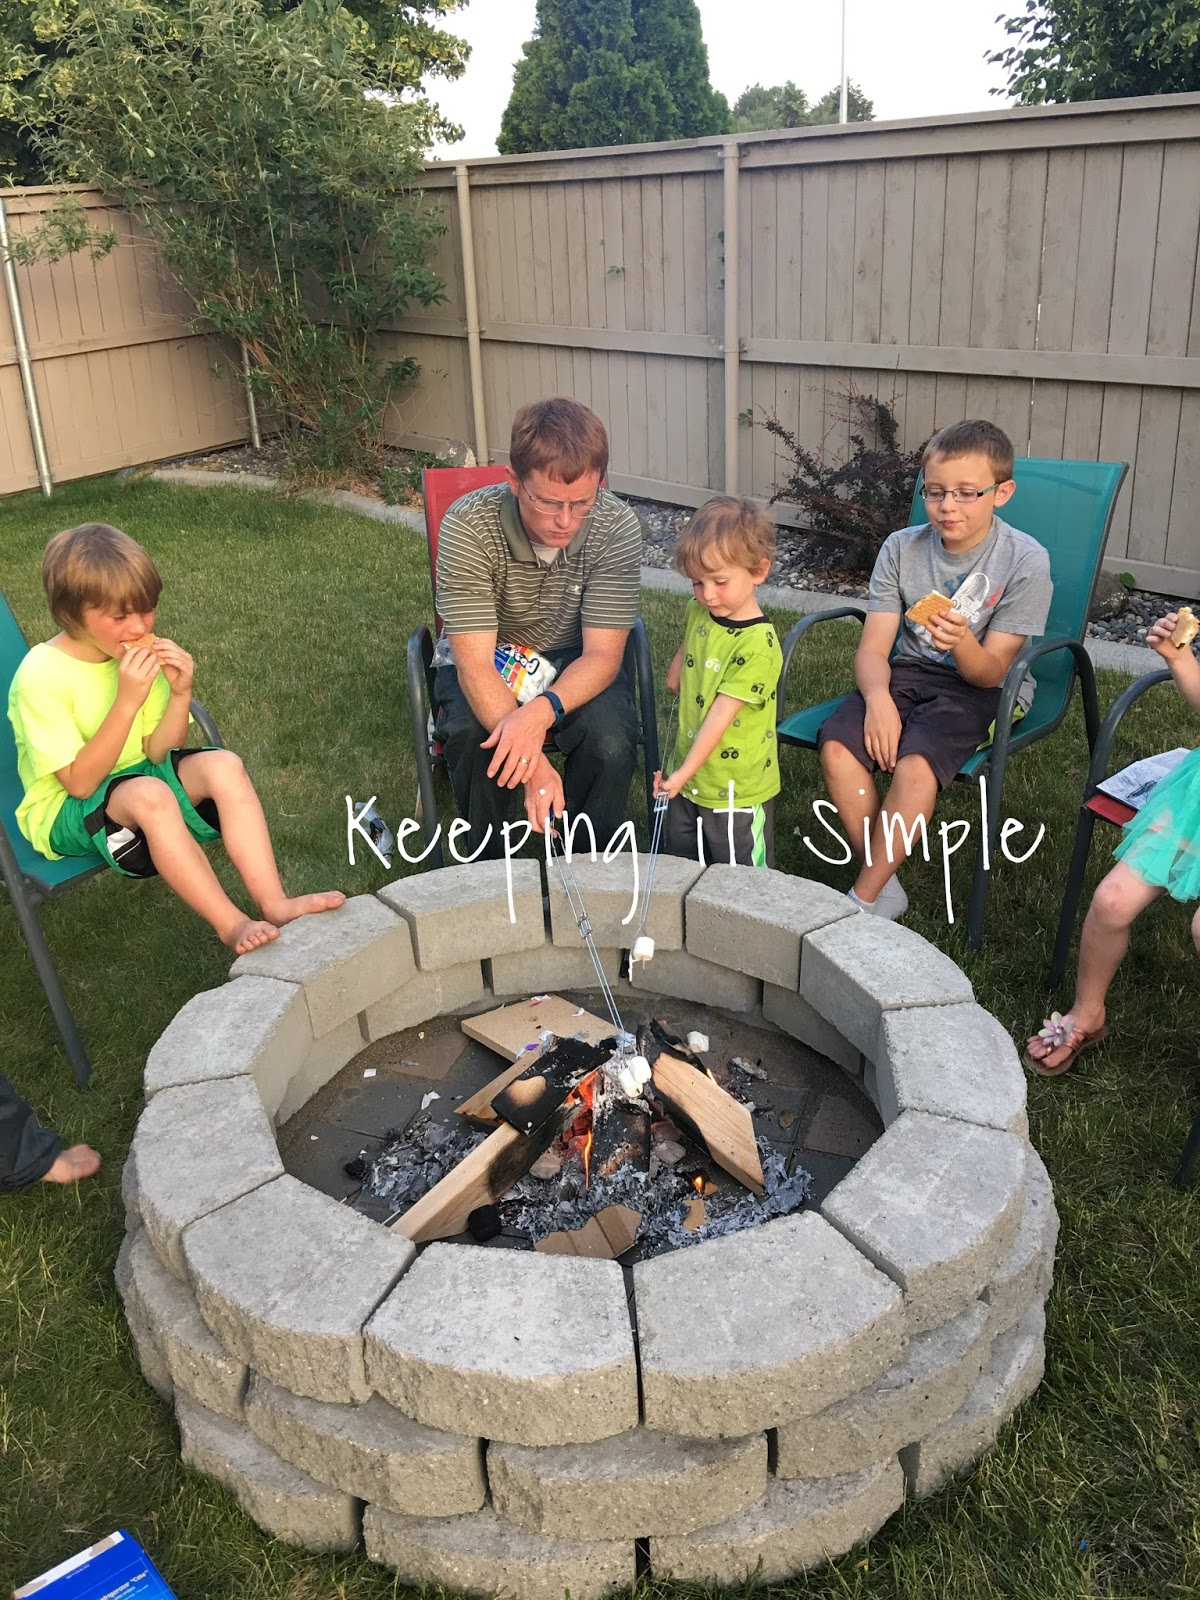 How To Build A Diy Fire Pit For Only 60 Keeping It Simple regarding Backyard Firepit Ideas